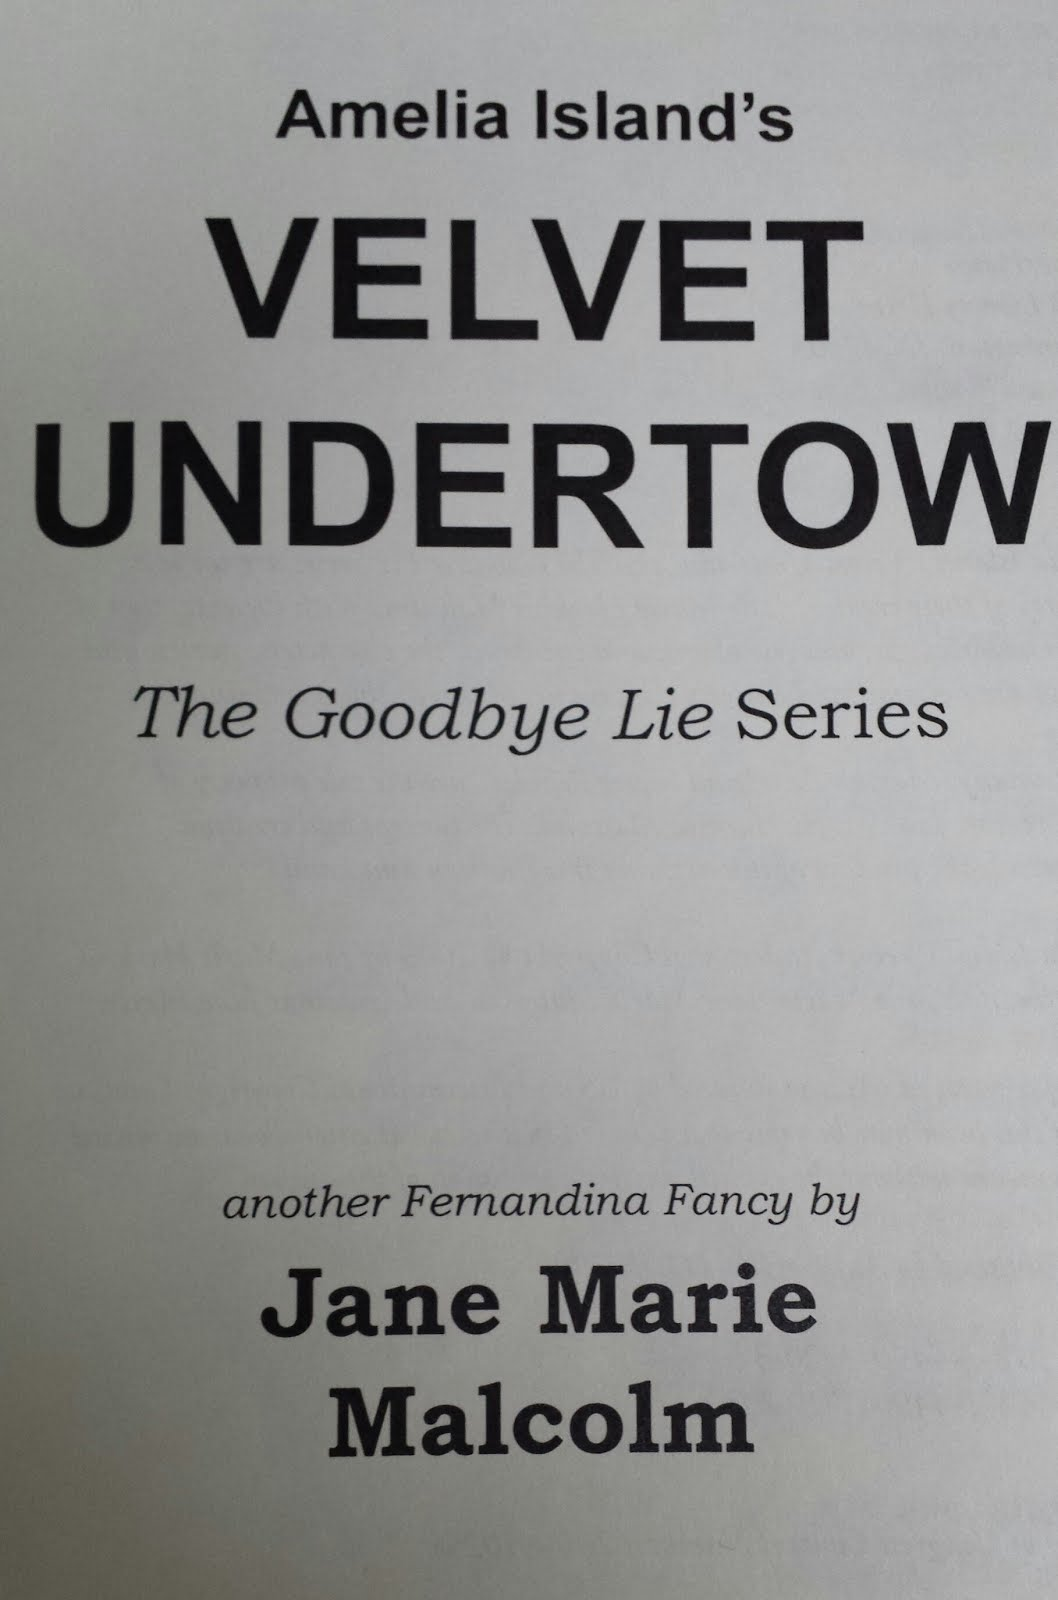 Click on the Title Page below to read the Opening Pages of Amelia Island's Velvet Undertow